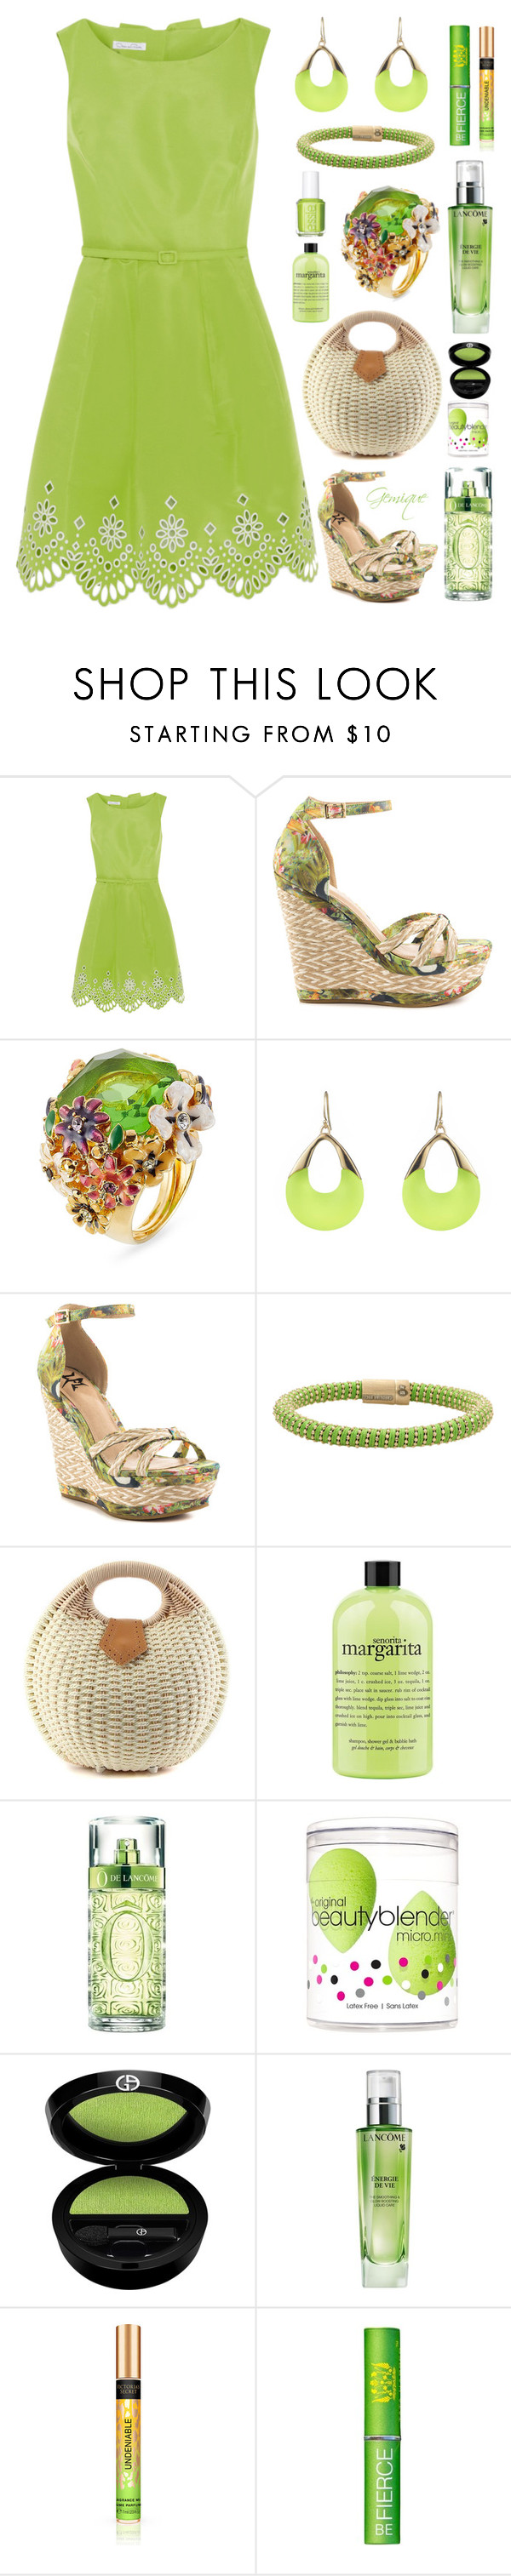 """Limey Girl"" by gemique ❤ liked on Polyvore featuring Oscar de la Renta, Lust For Life, Kenneth Jay Lane, Alexis Bittar, Carolina Bucci, Essie, philosophy, Lancôme, beautyblender and Armani Beauty"